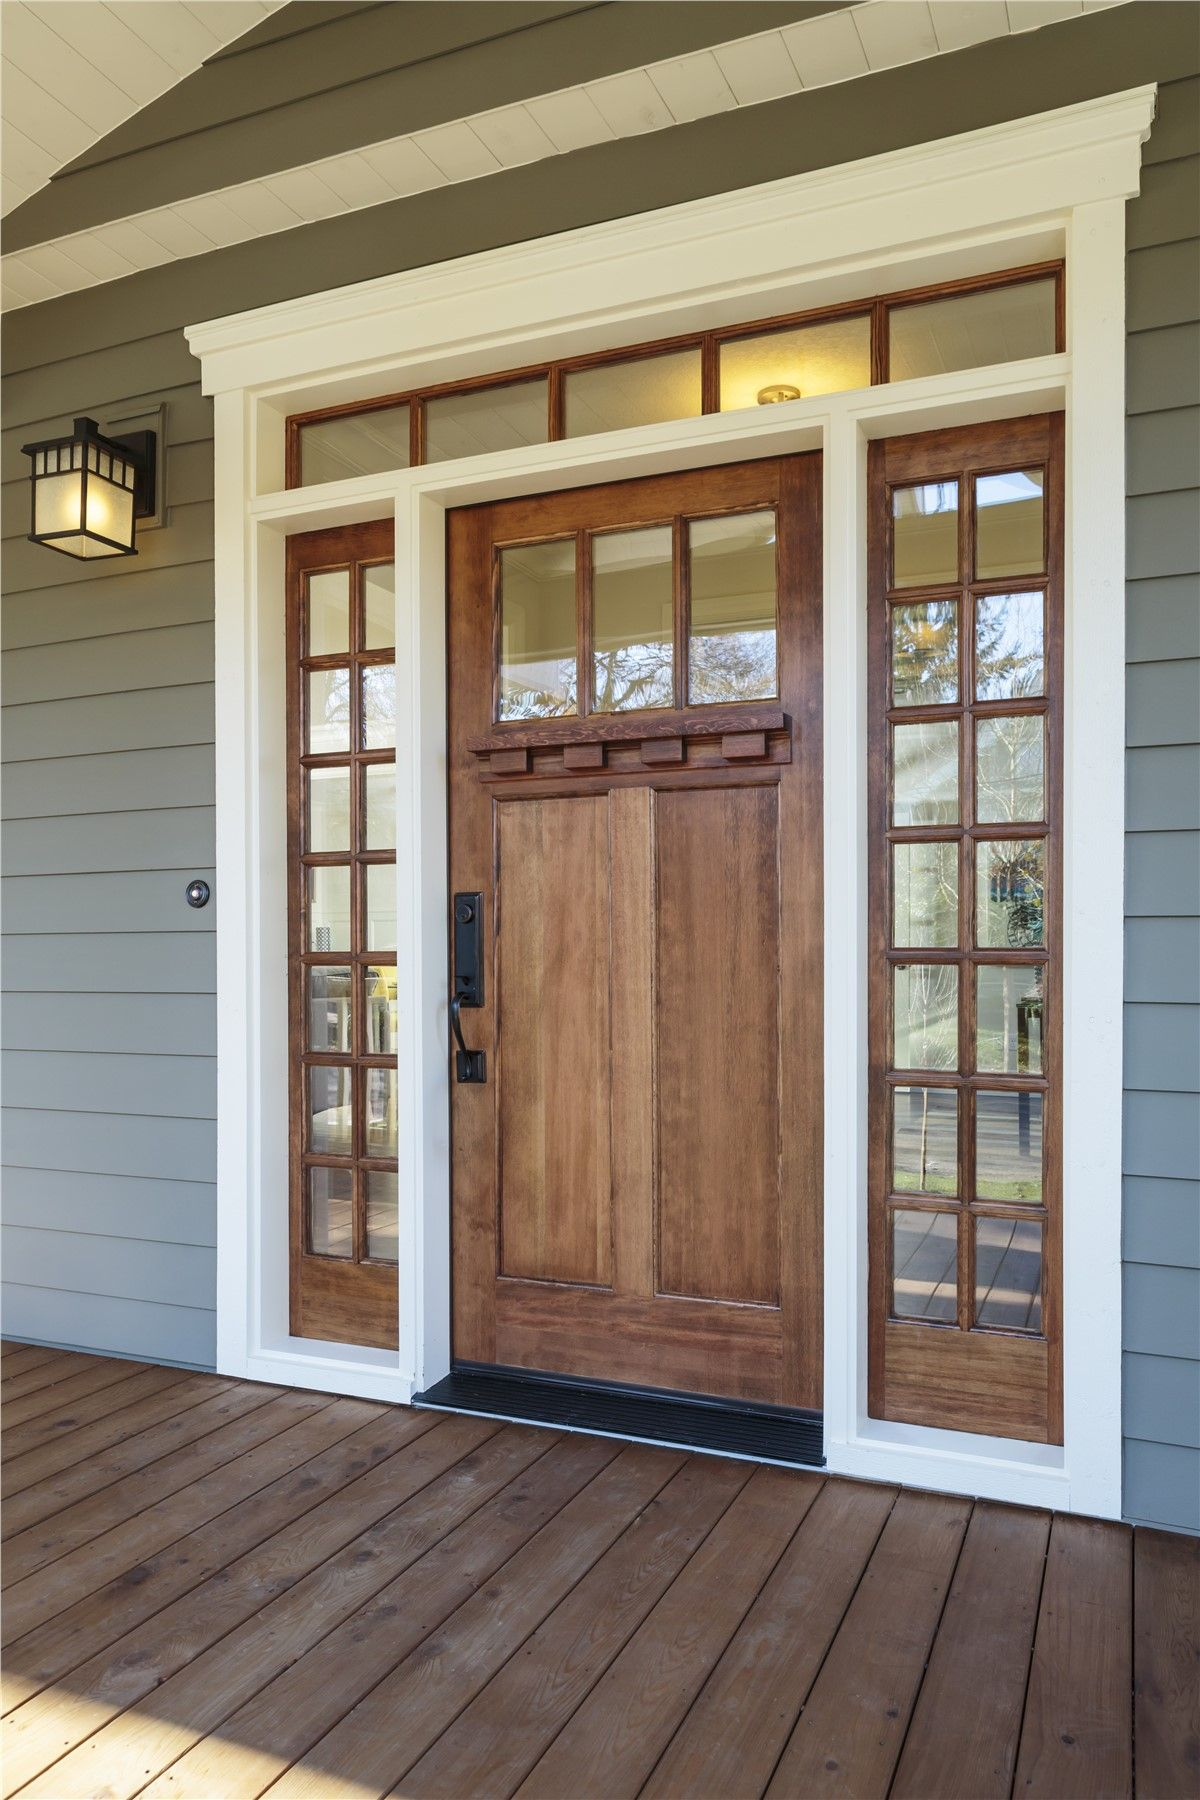 Replacement Doors 3 House Exterior Front Door Design Craftsman House